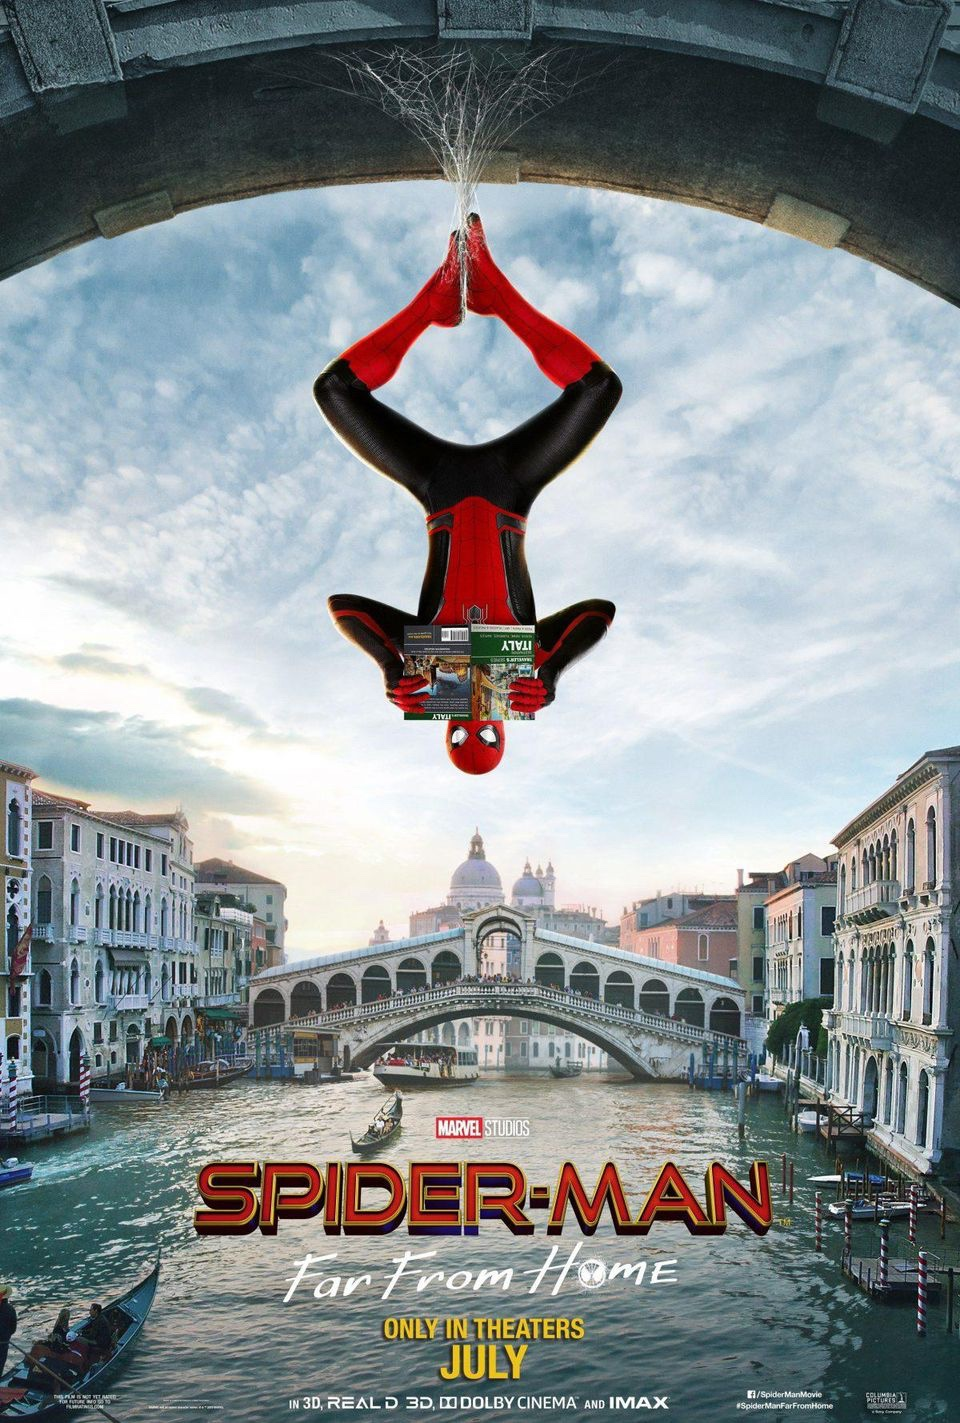 Spider-man-far-from-home-3-D-3D-movie-review.jpeg